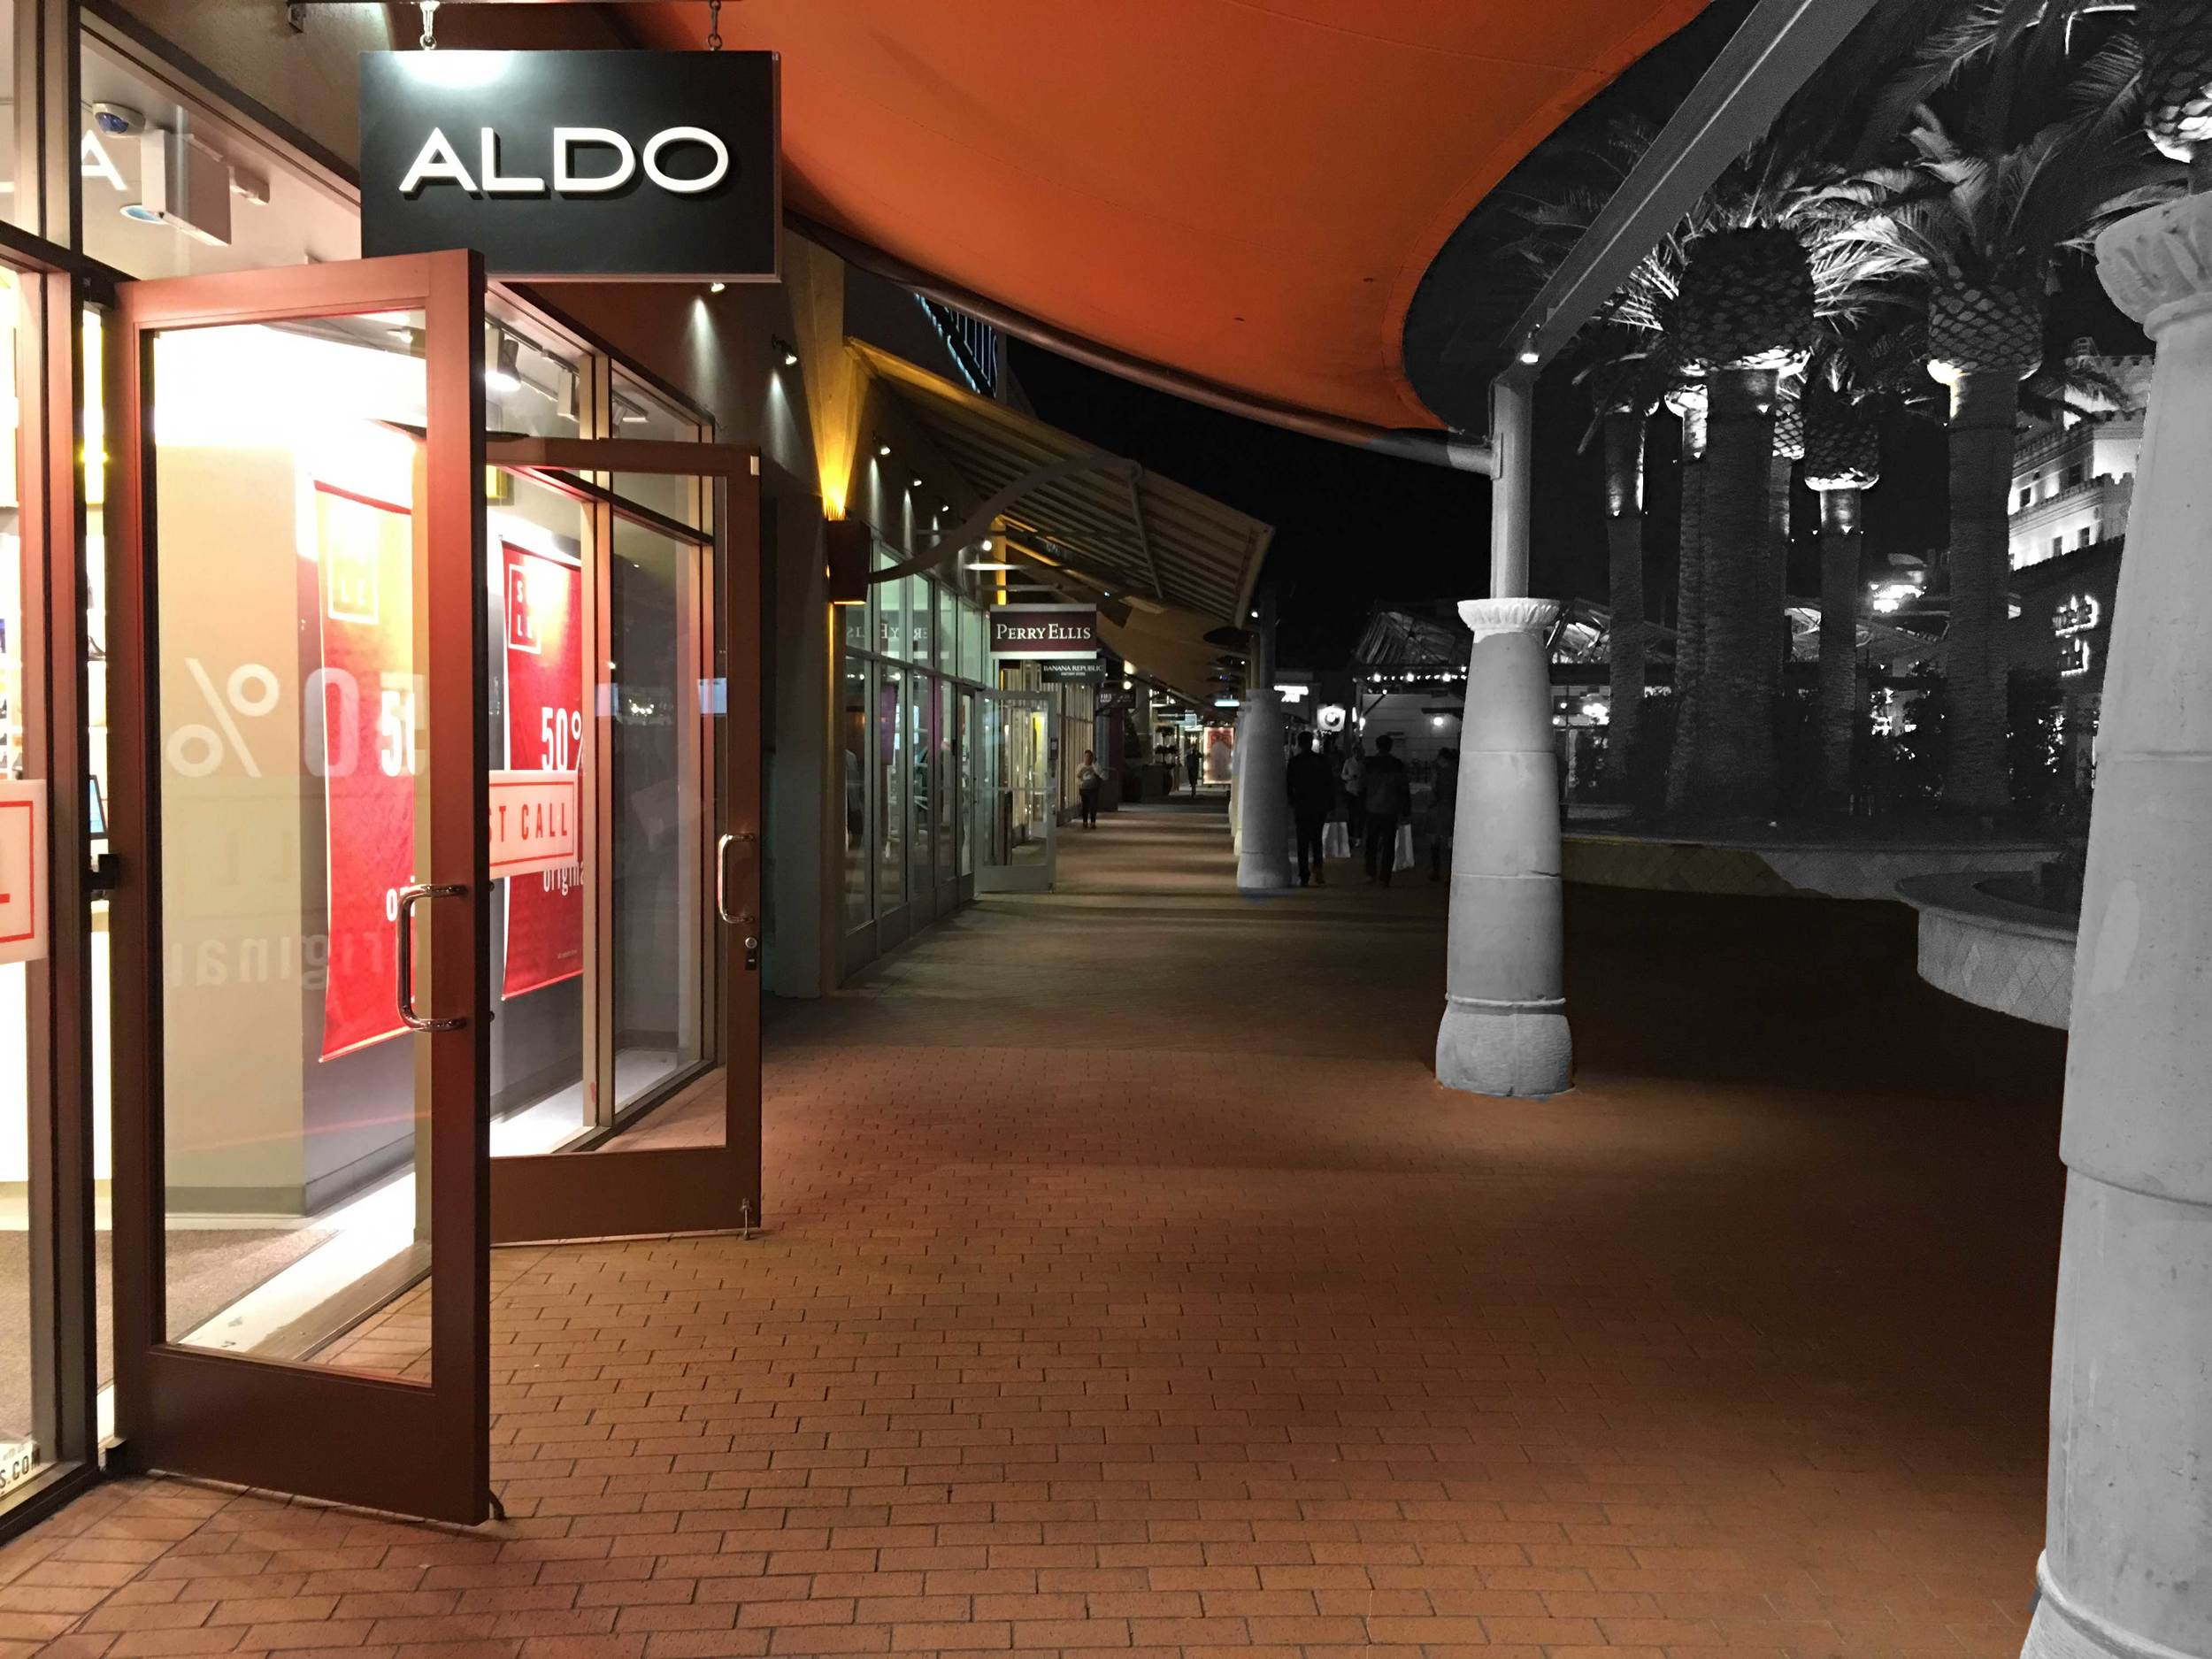 Aldo, Perry Ellis and other stores at the Citadel Outlets, CA, USA. Image©gunjanvirk